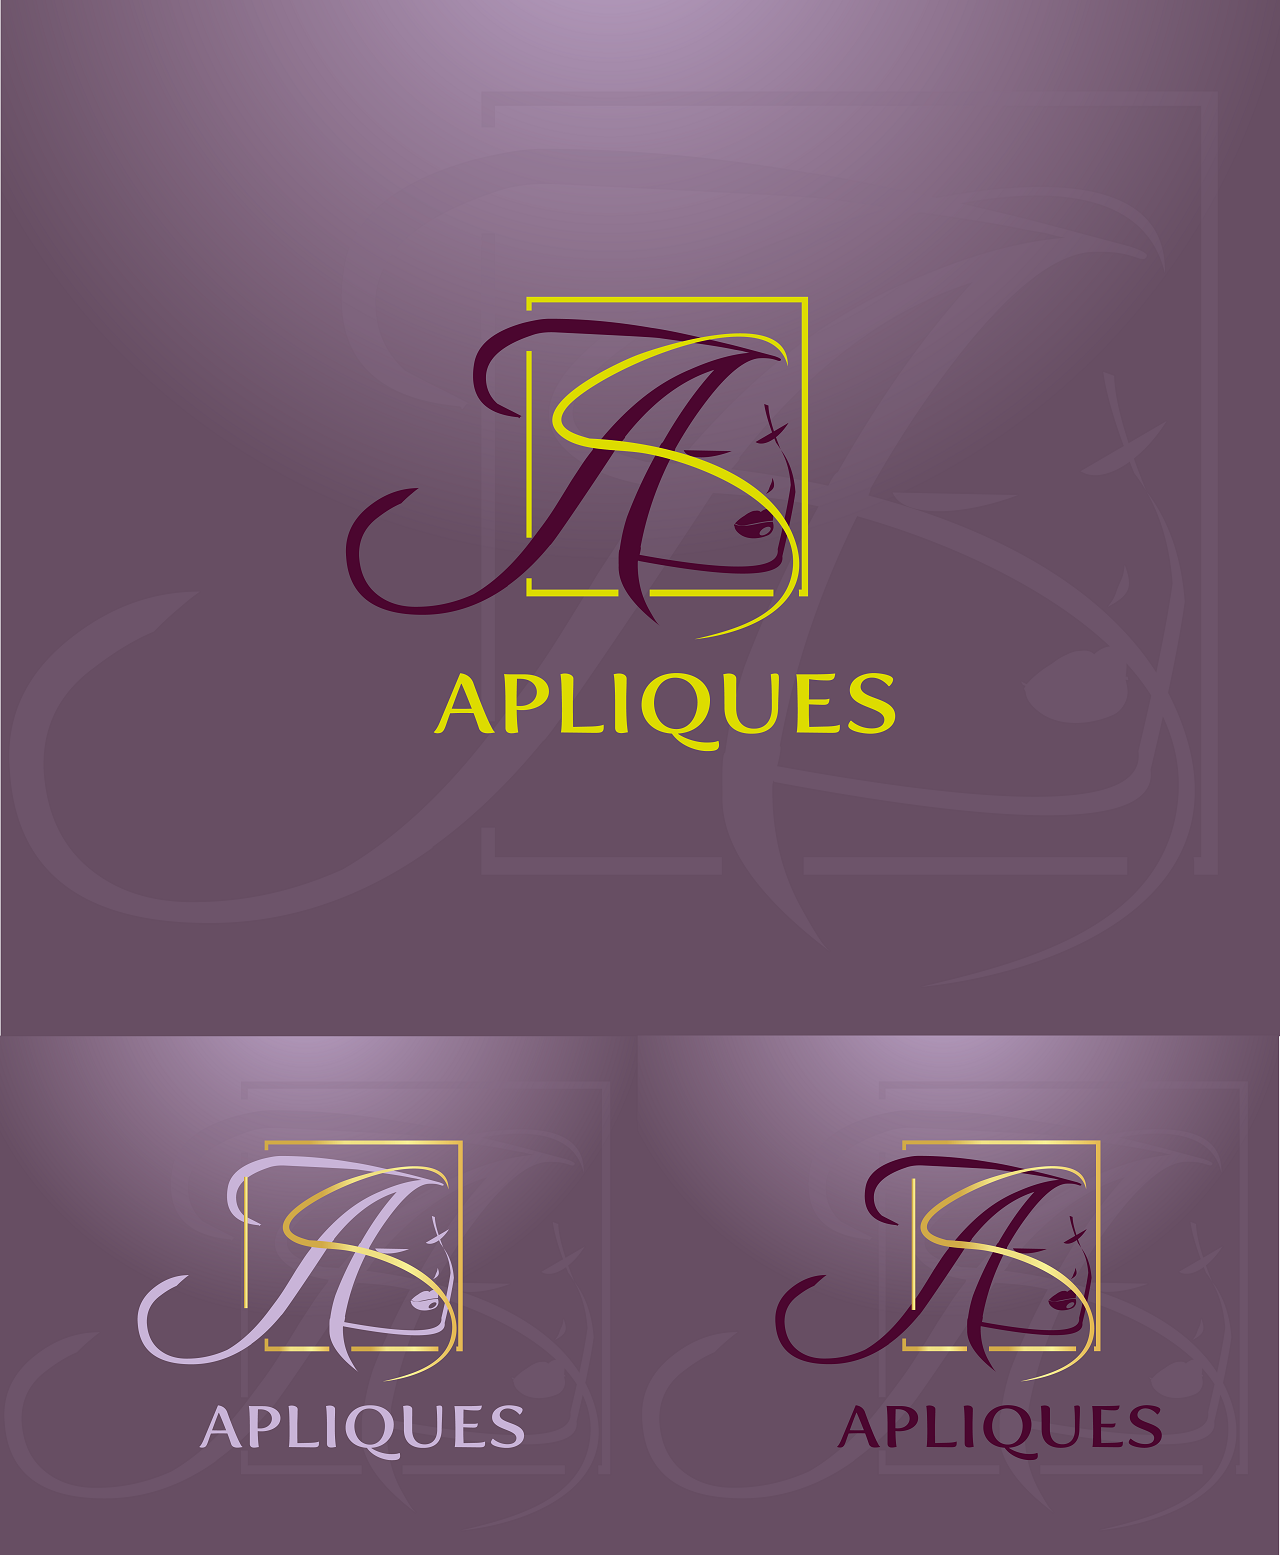 Help Apliques with a new logo